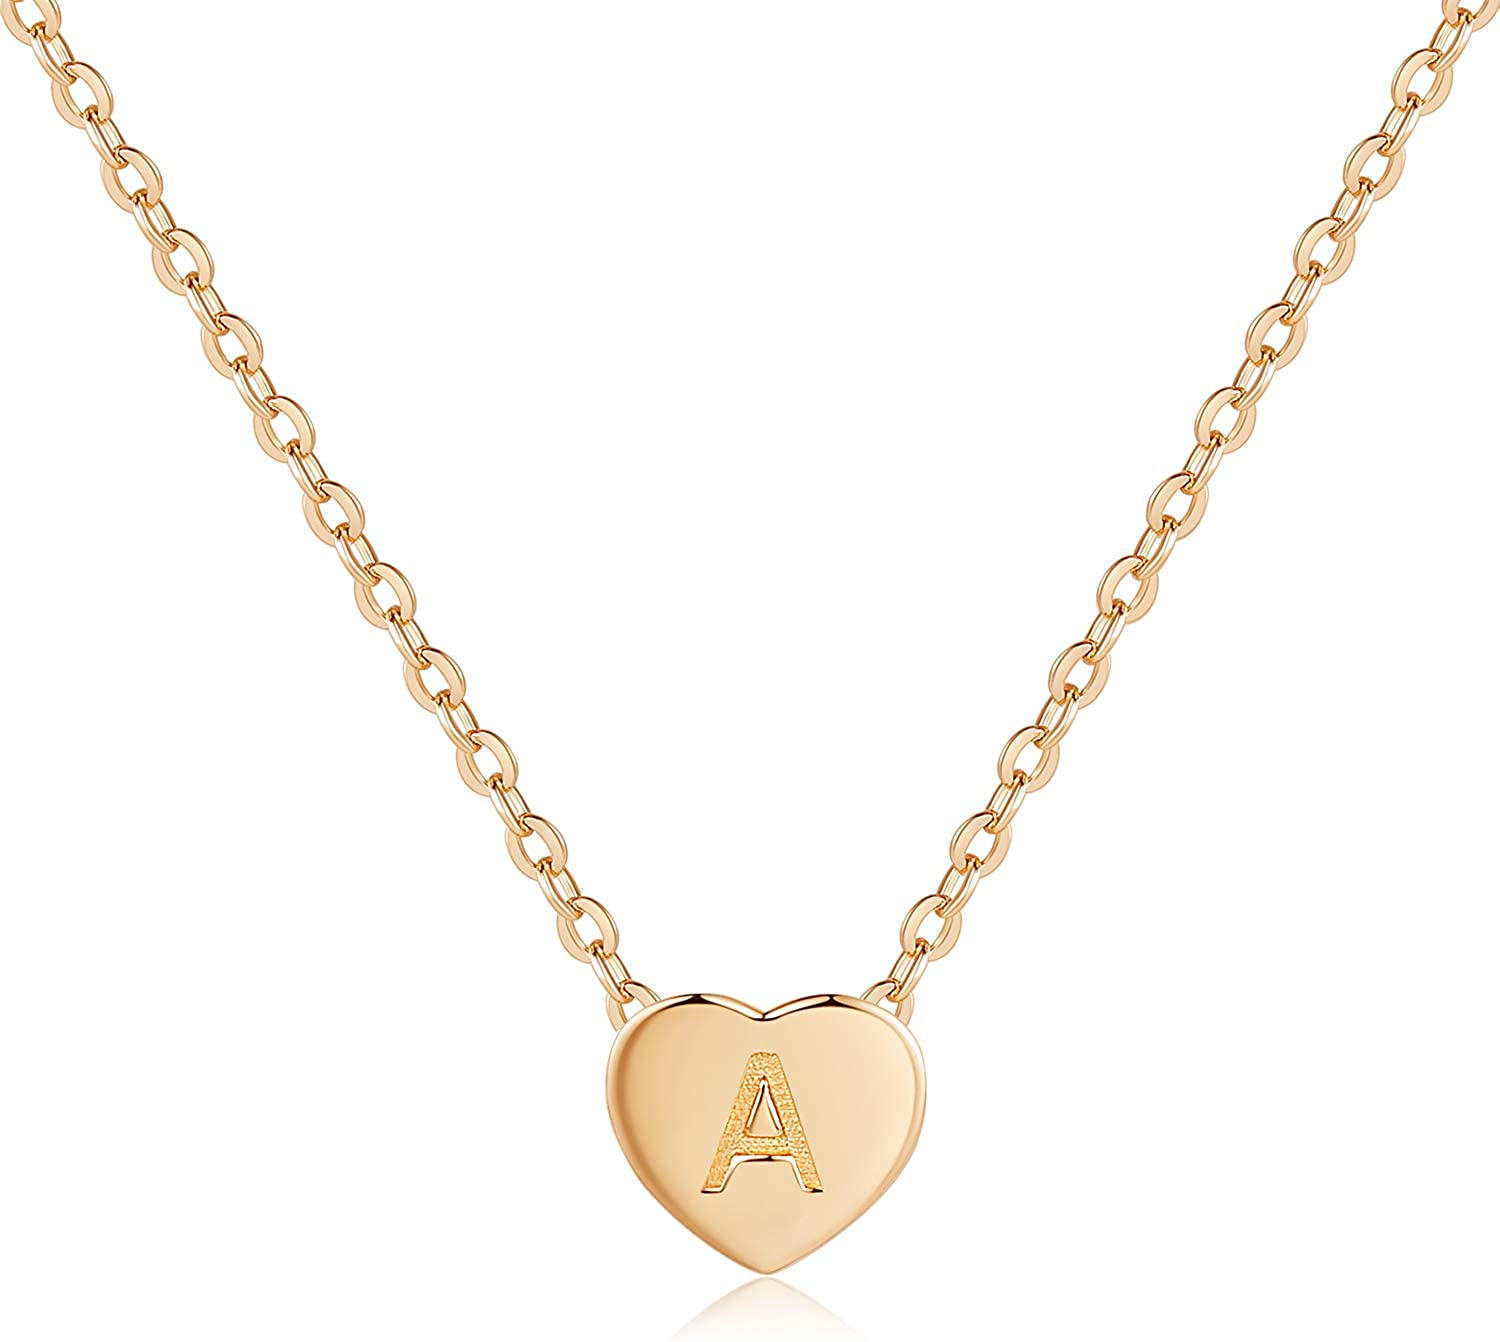 CDE Tiny Gold Initial Heart Necklace 925 Sterling Silver Pendant Rose Gold Plated Personalized Letter Heart Choker Necklace Jewelry Gift for Women